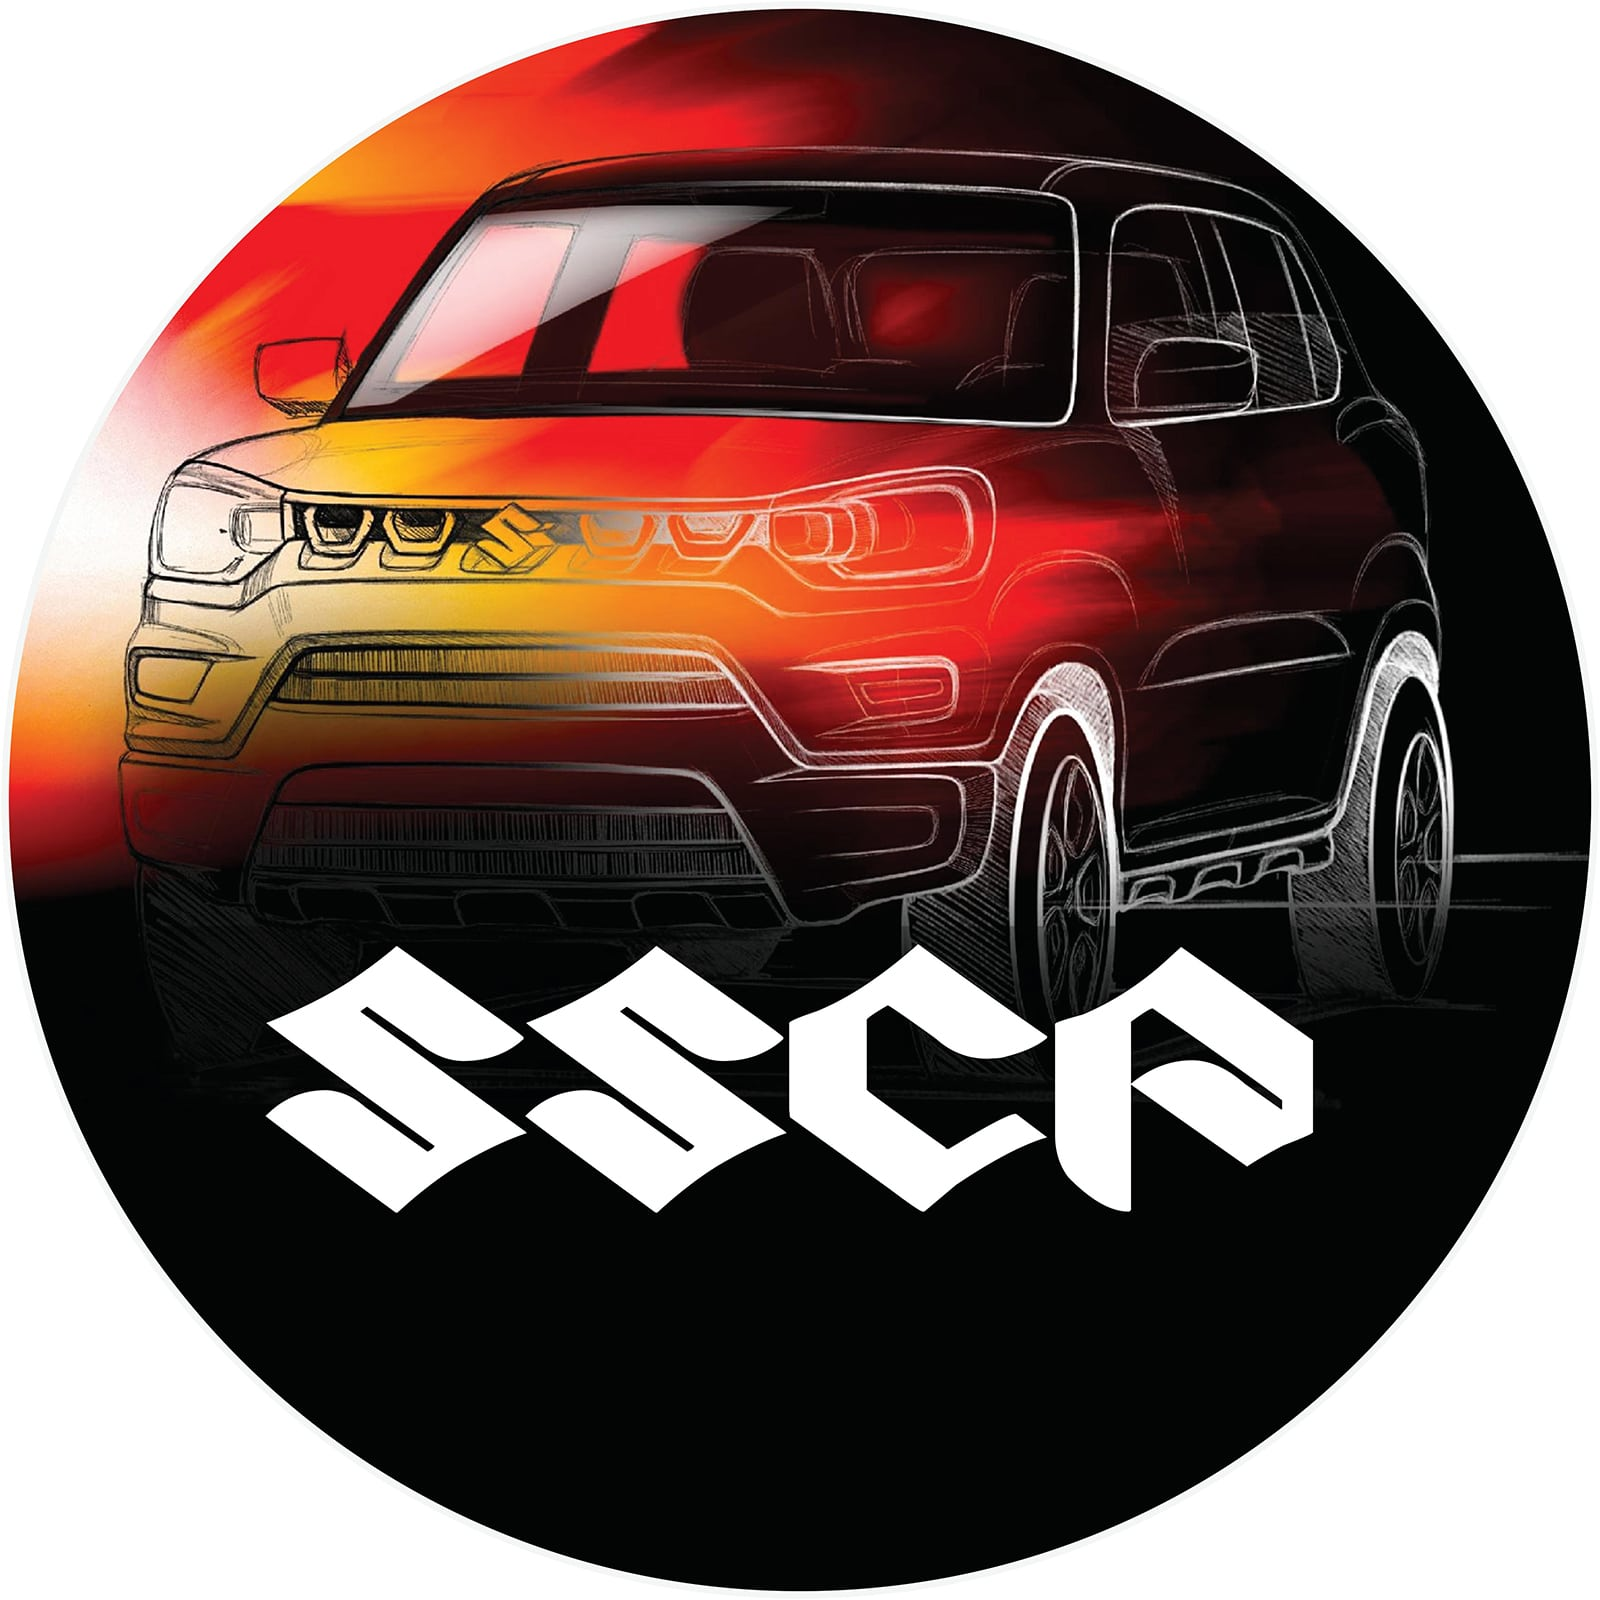 SPH welcomes the S-Presso Car Club to the Suzuki Family